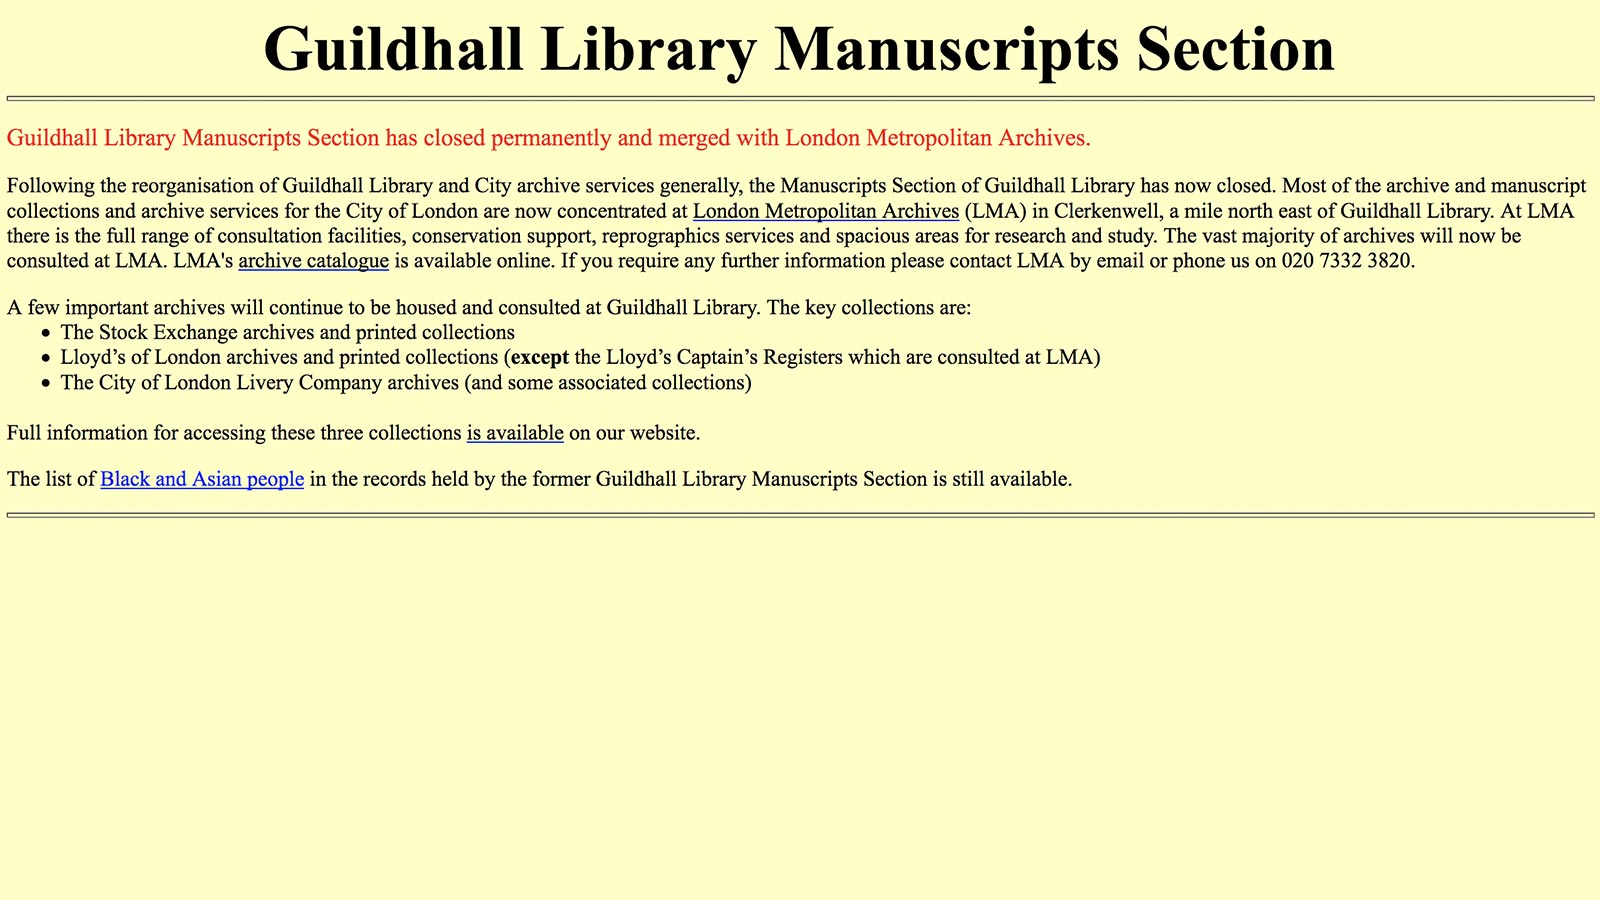 Guildhall Library Manuscripts Section